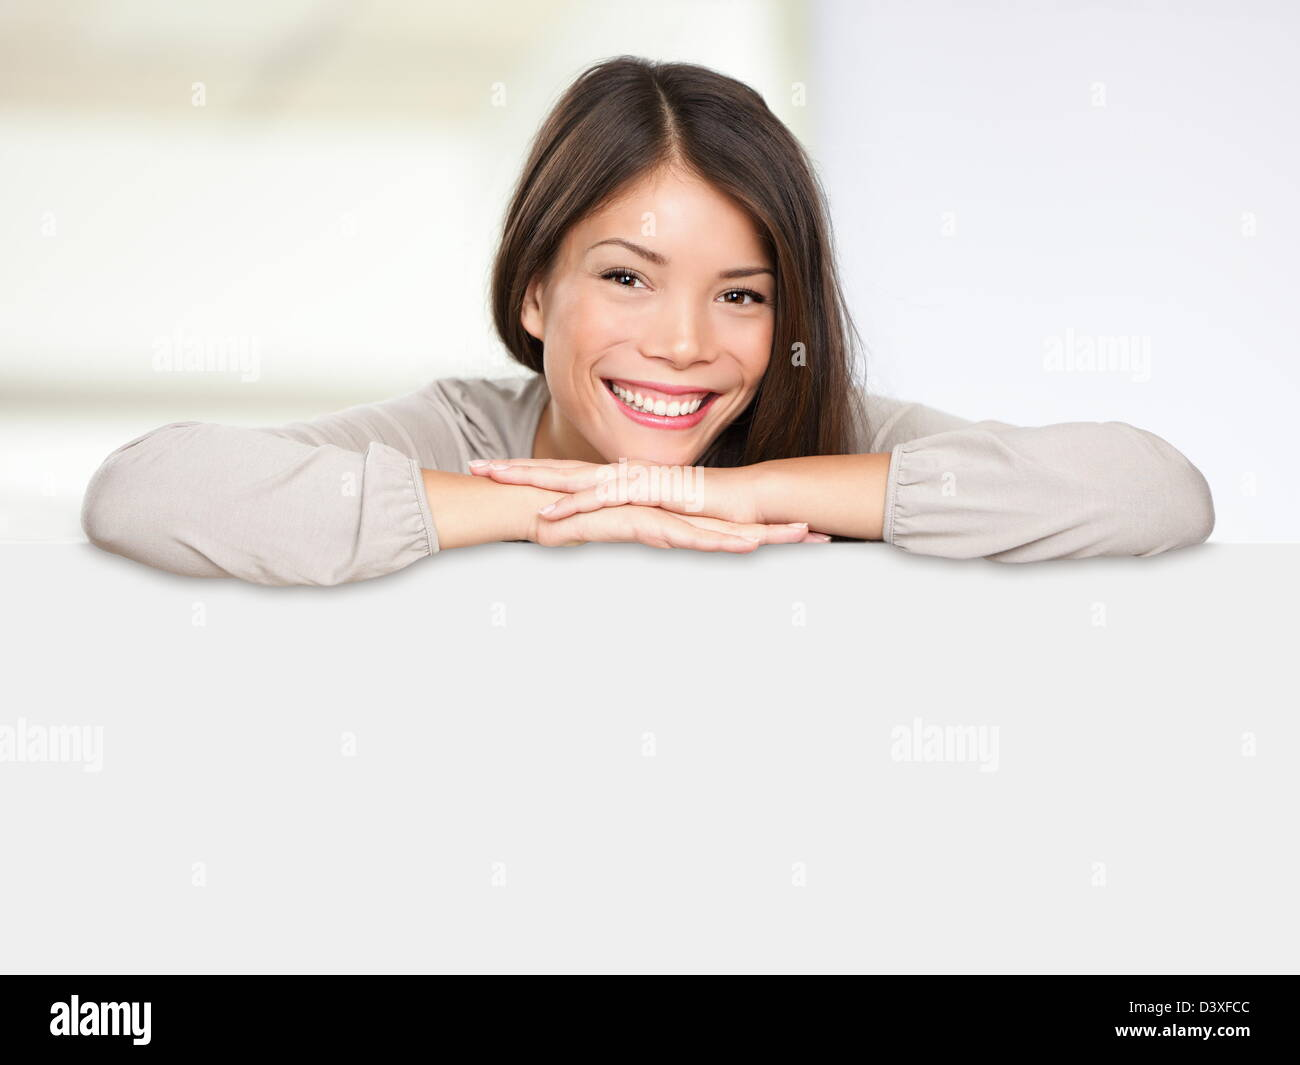 Ambiance Asiatique et multiethnique mixed race Woman woman leaning on occasionnels panneau vierge Photo Stock